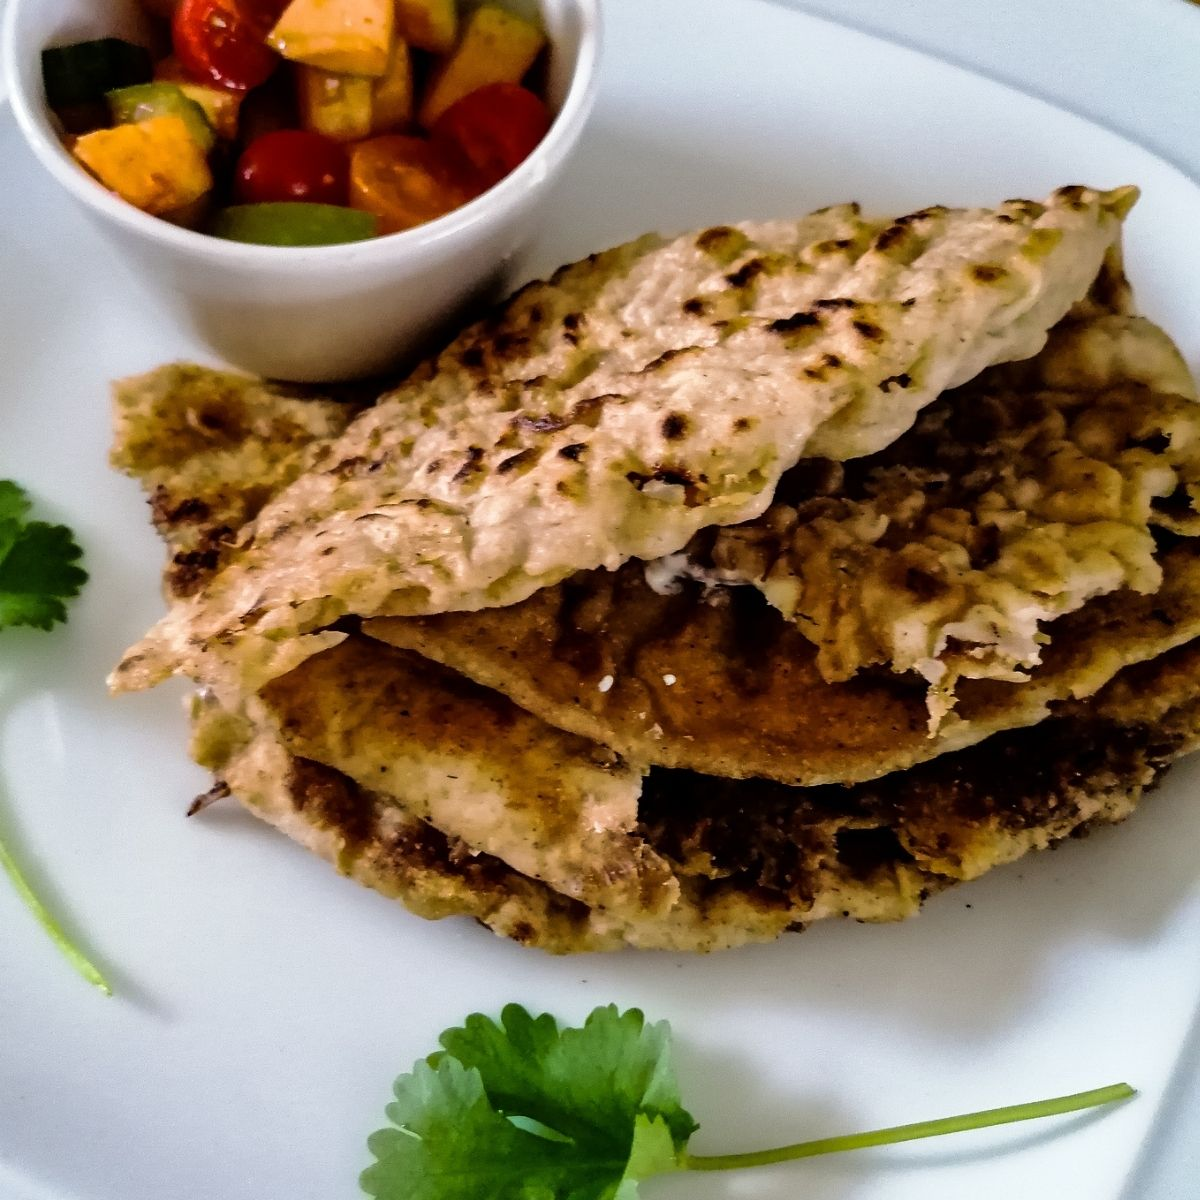 Pakistani keema paratha - the flatbread with minced meat filling